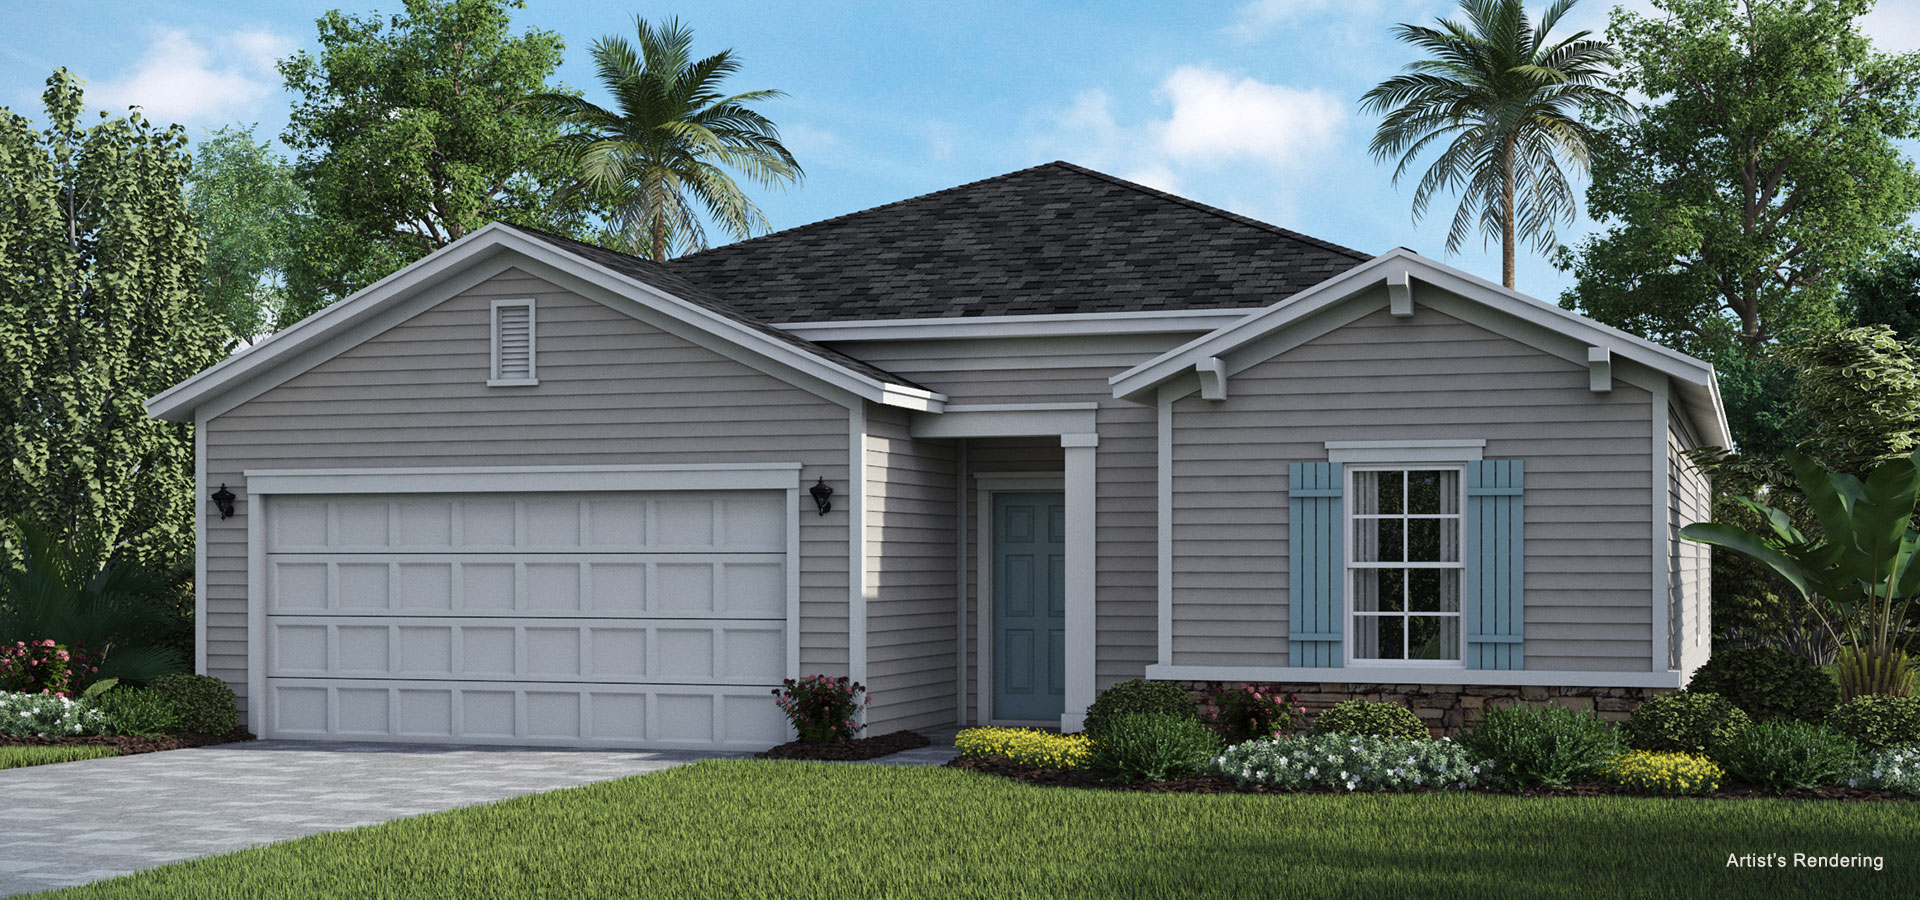 exterior elevation rendering of elan model home at lakeview tributary